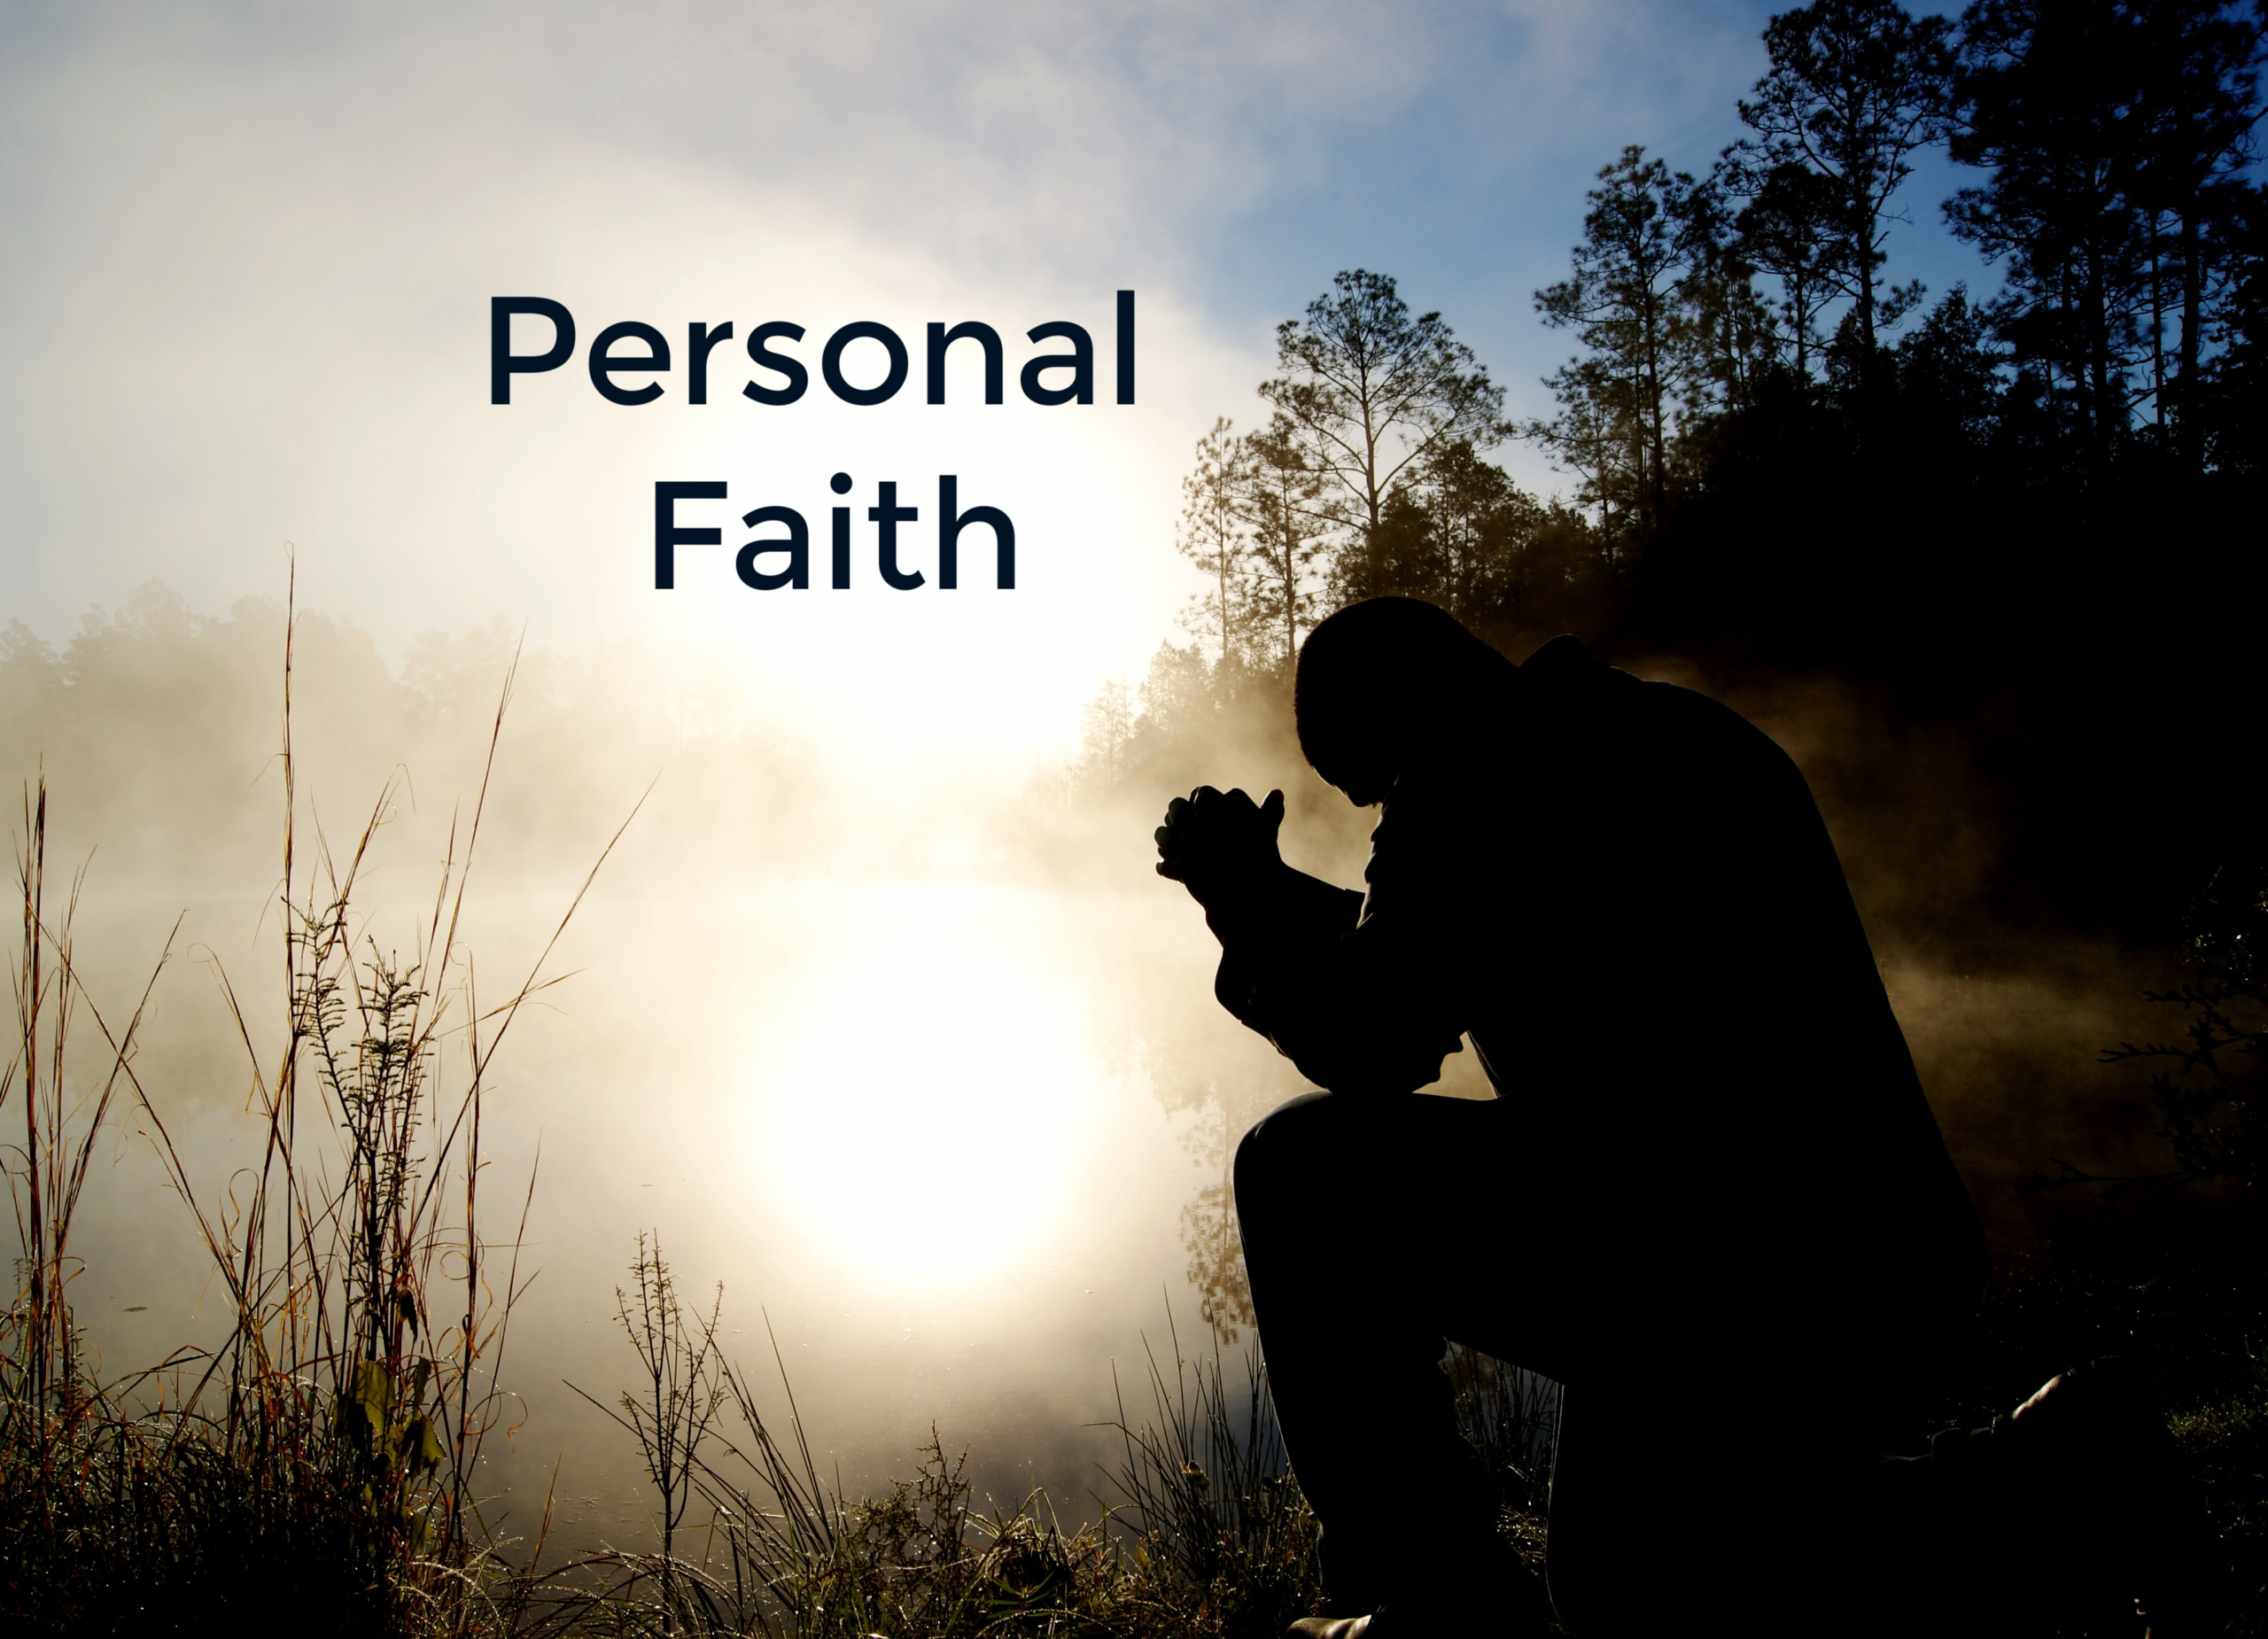 Personal Faith, Man praying